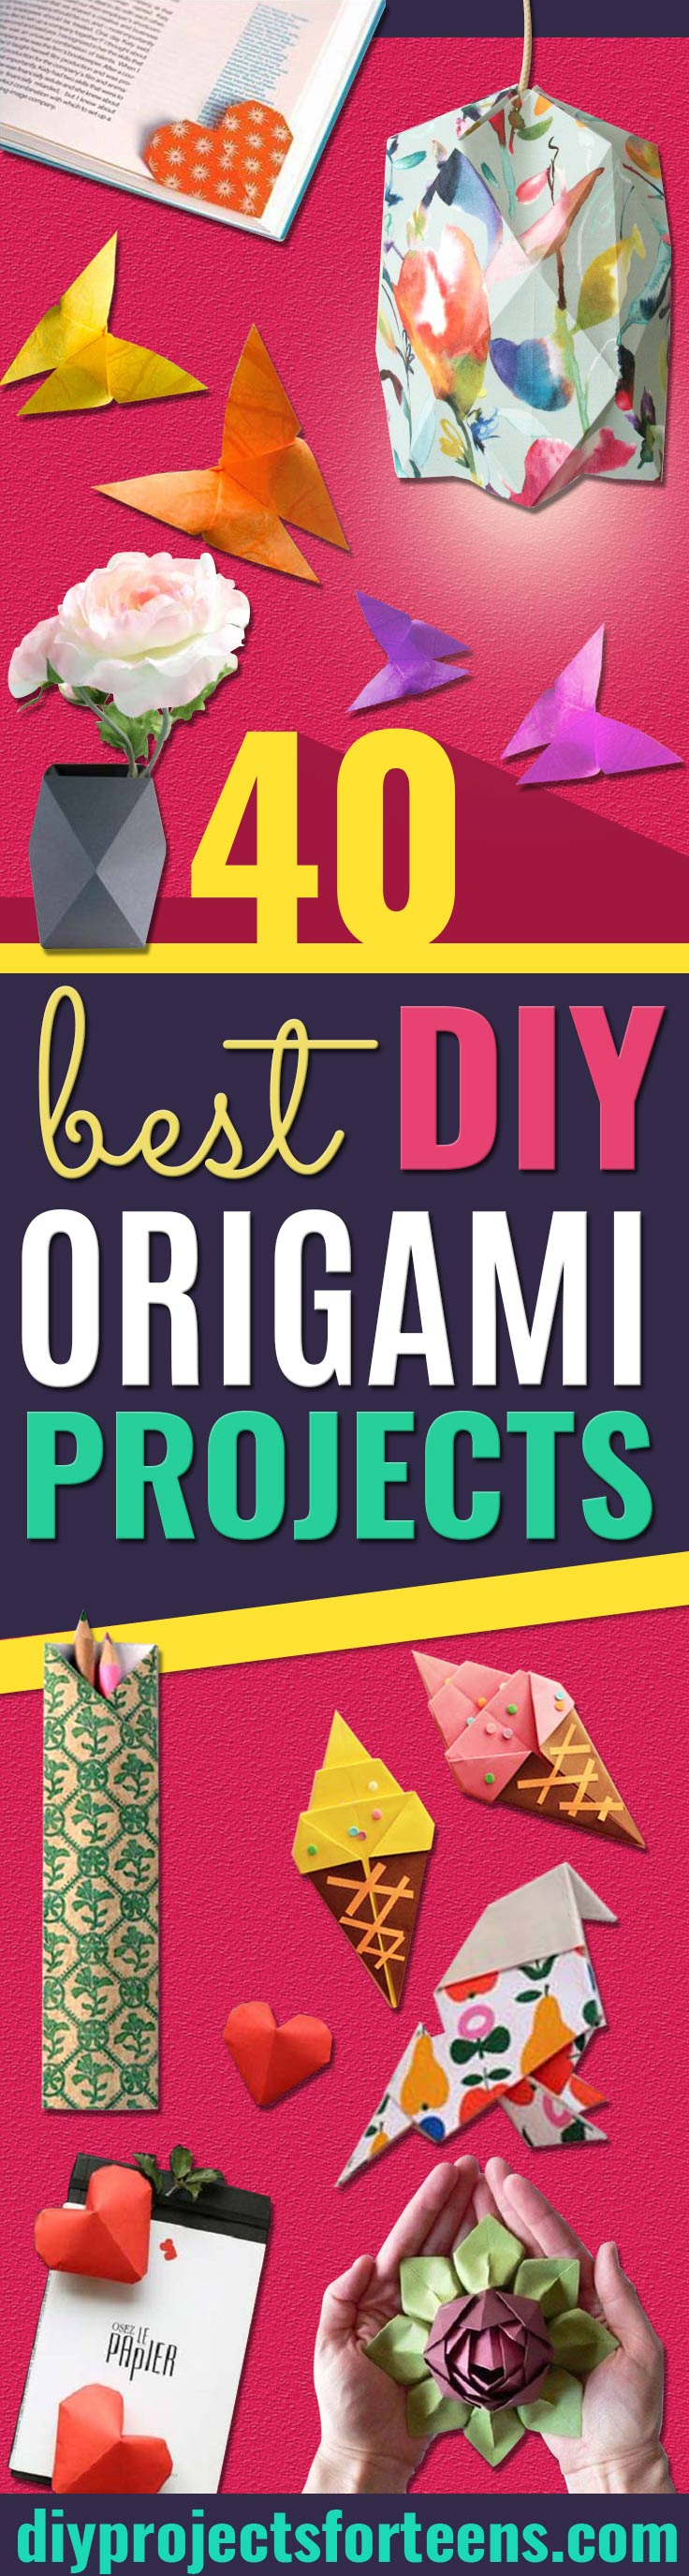 Best Origami Tutorials - Easy DIY Origami Tutorial Projects for With Instructions for Flowers, Dog, Gift Box, Star, Owl, Buttlerfly, Heart and Bookmark, Animals - Fun Paper Crafts for Teens, Kids and Adults